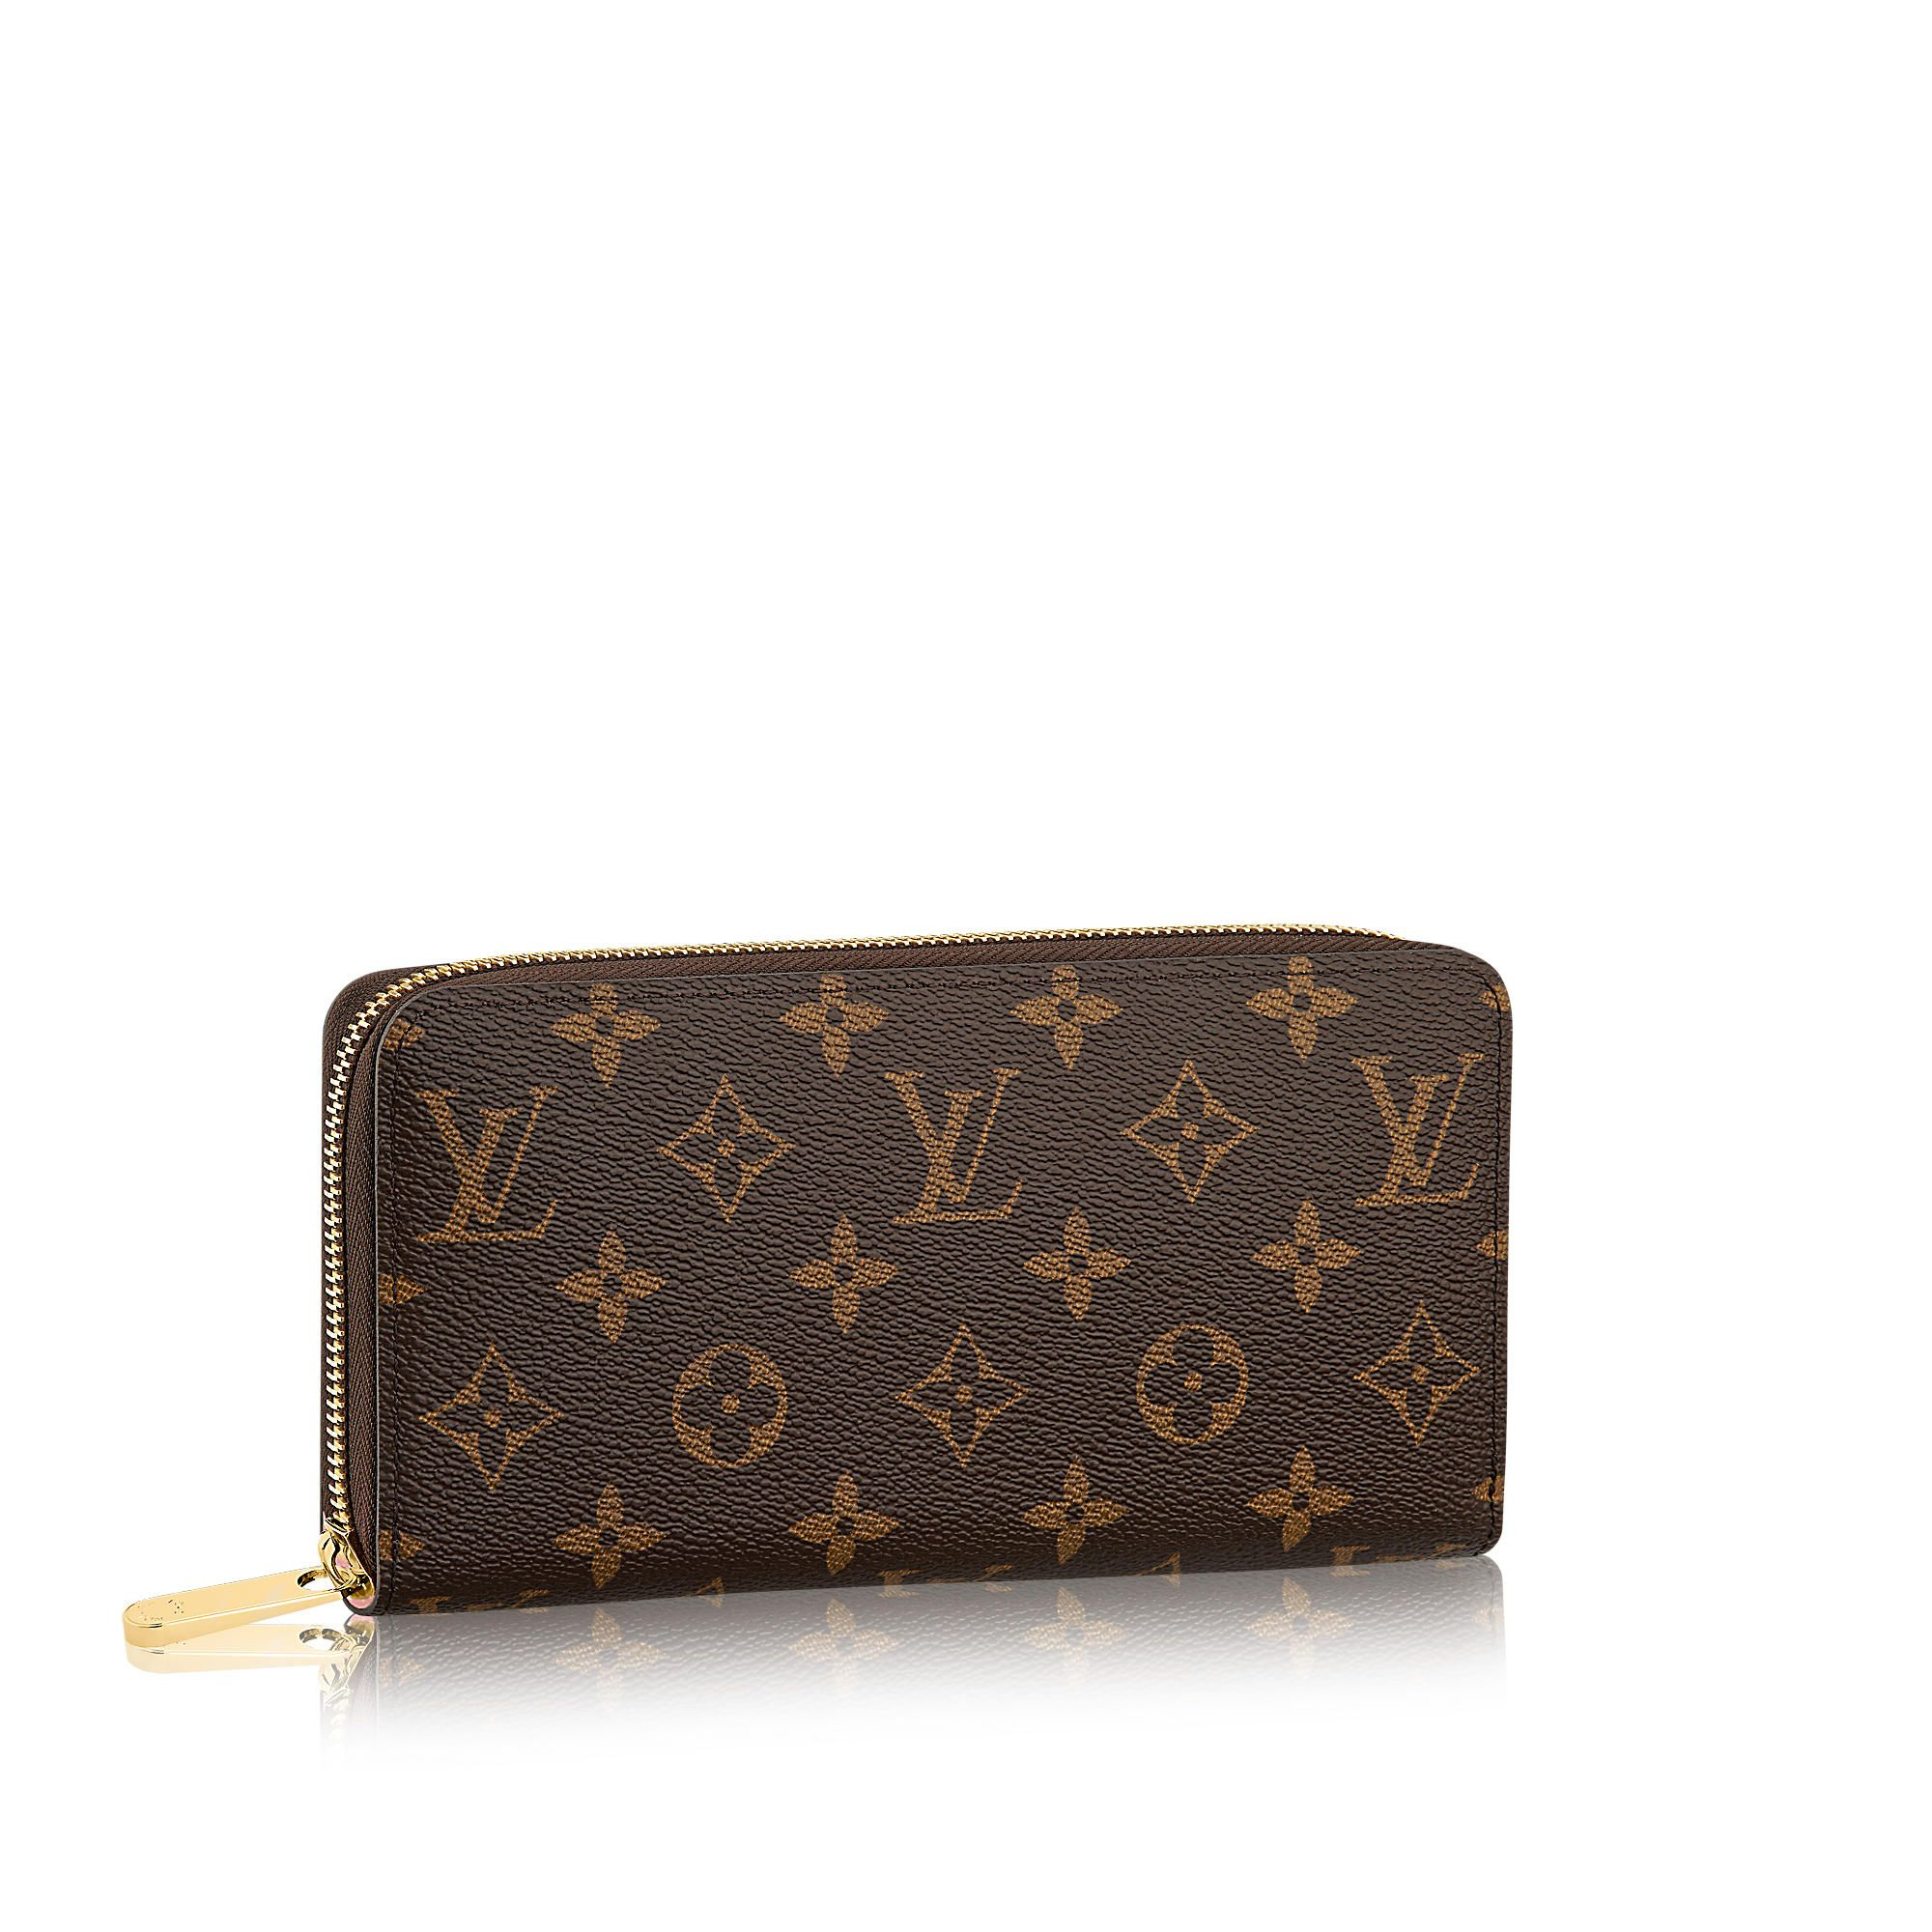 6a9157a2e730 Portefeuille Zippy via Louis Vuitton   Sac   Louis vuitton ...